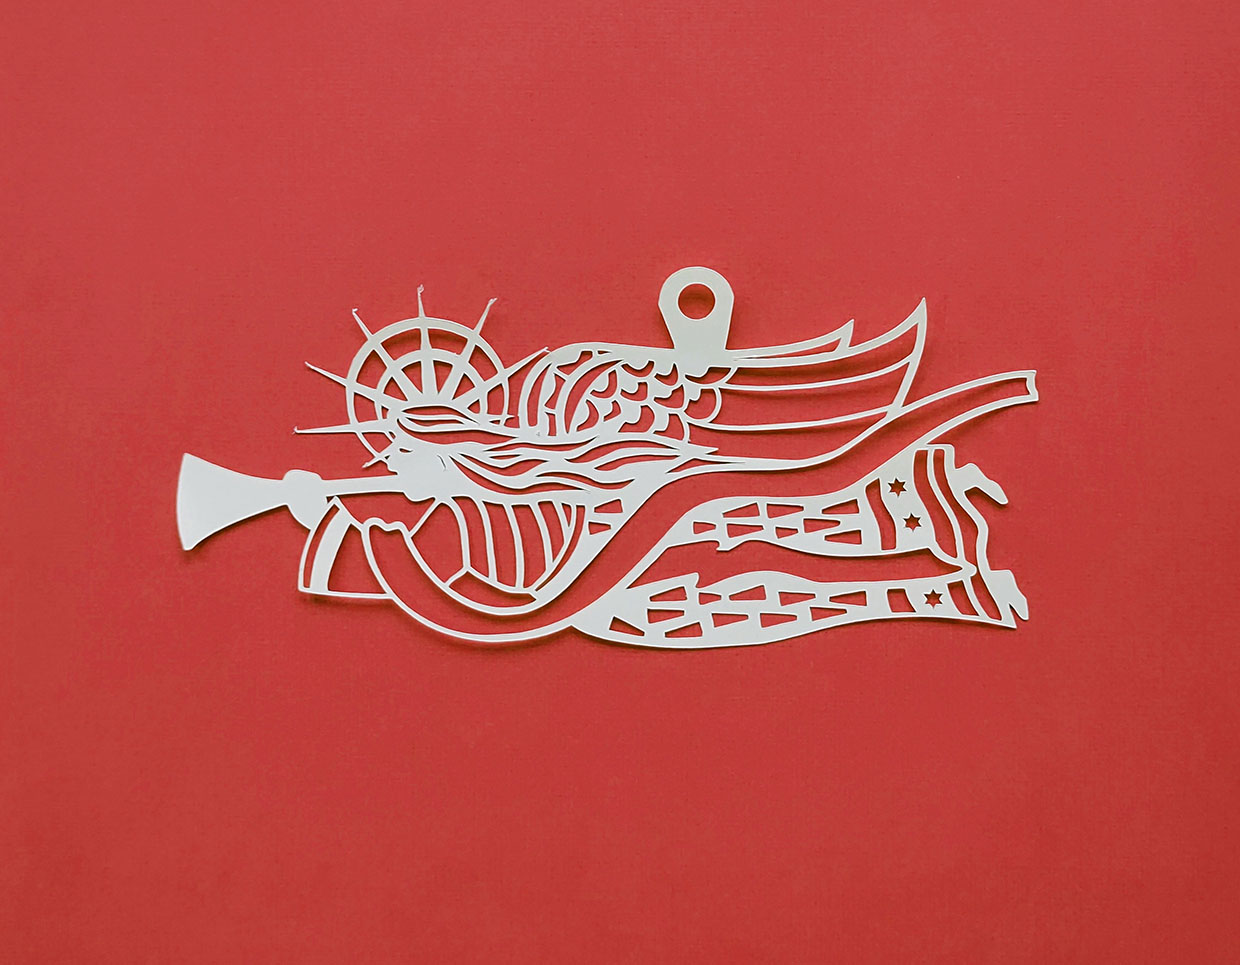 Paper cut of an angel flying playing the trumpet